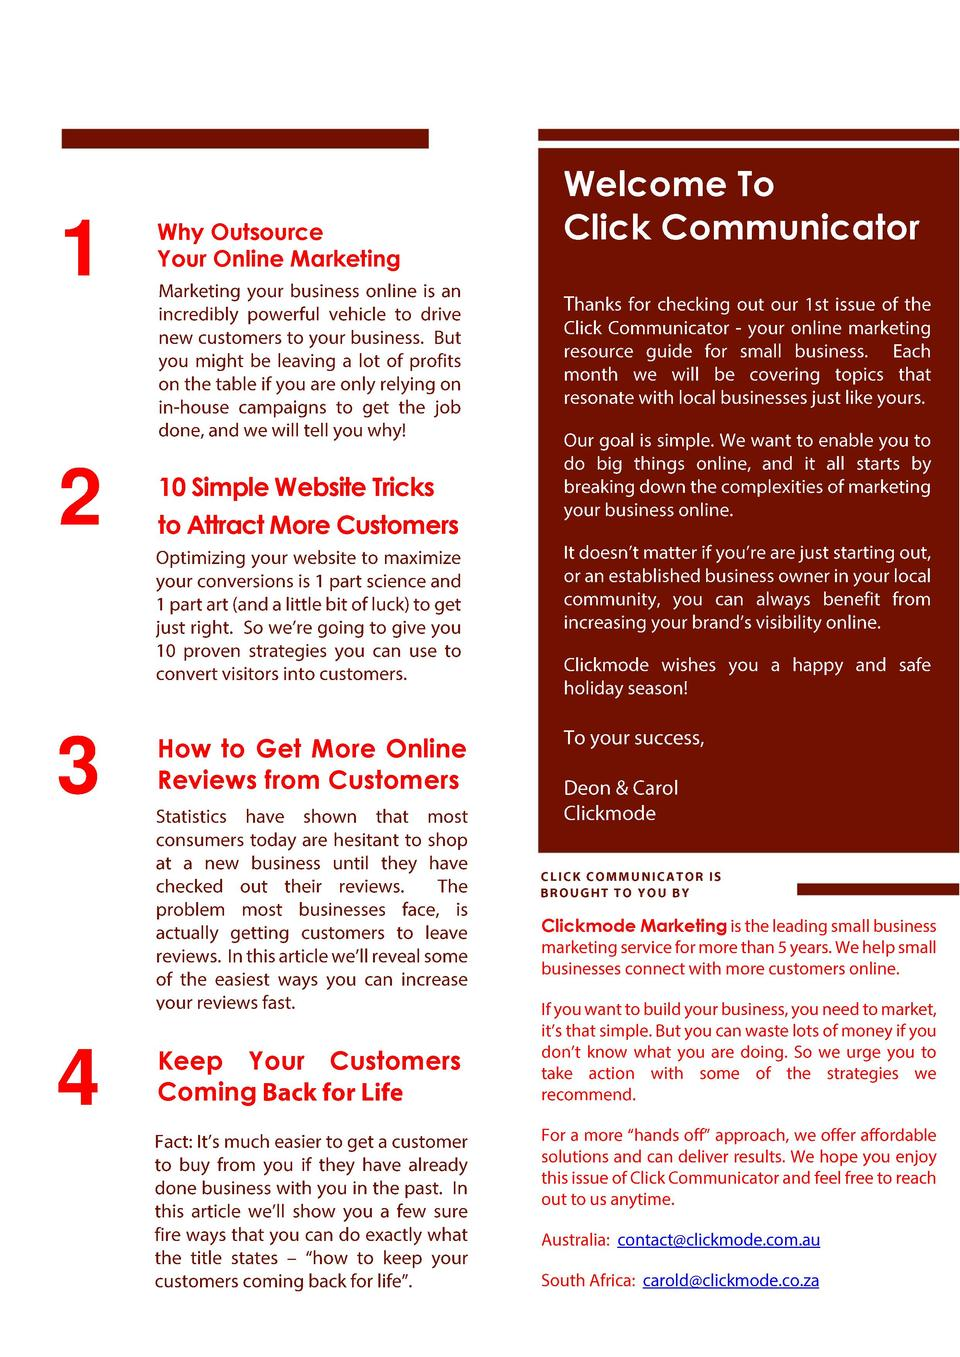 1  Why Outsource Your Online Marketing  2  10 Simple Website Tricks to Attract More Customers  3  Welcome To Click Communi...